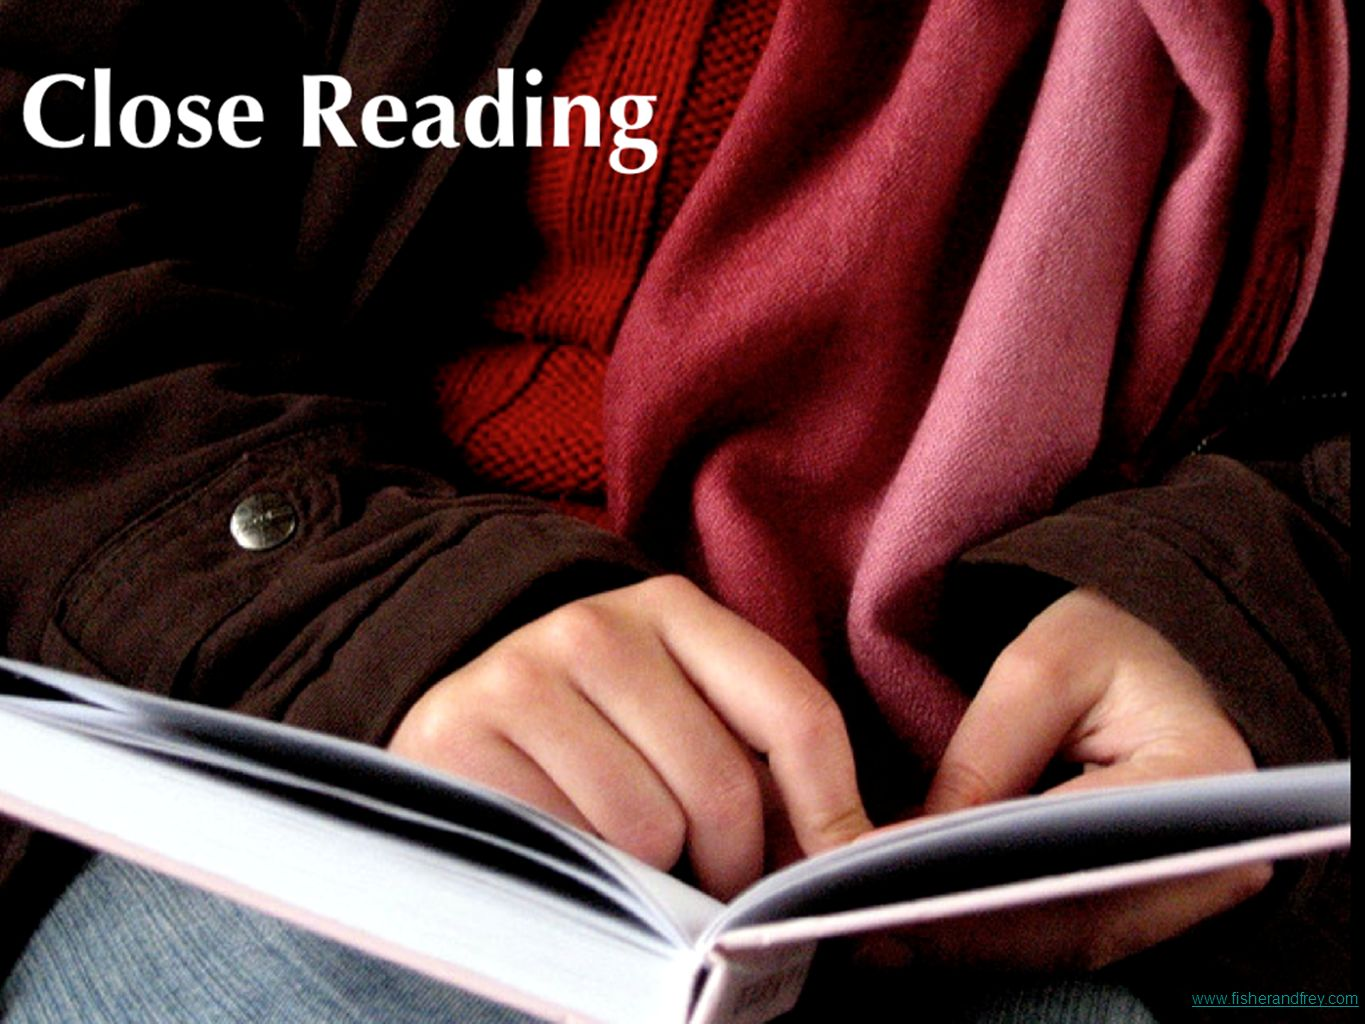 Let's read more about close reading